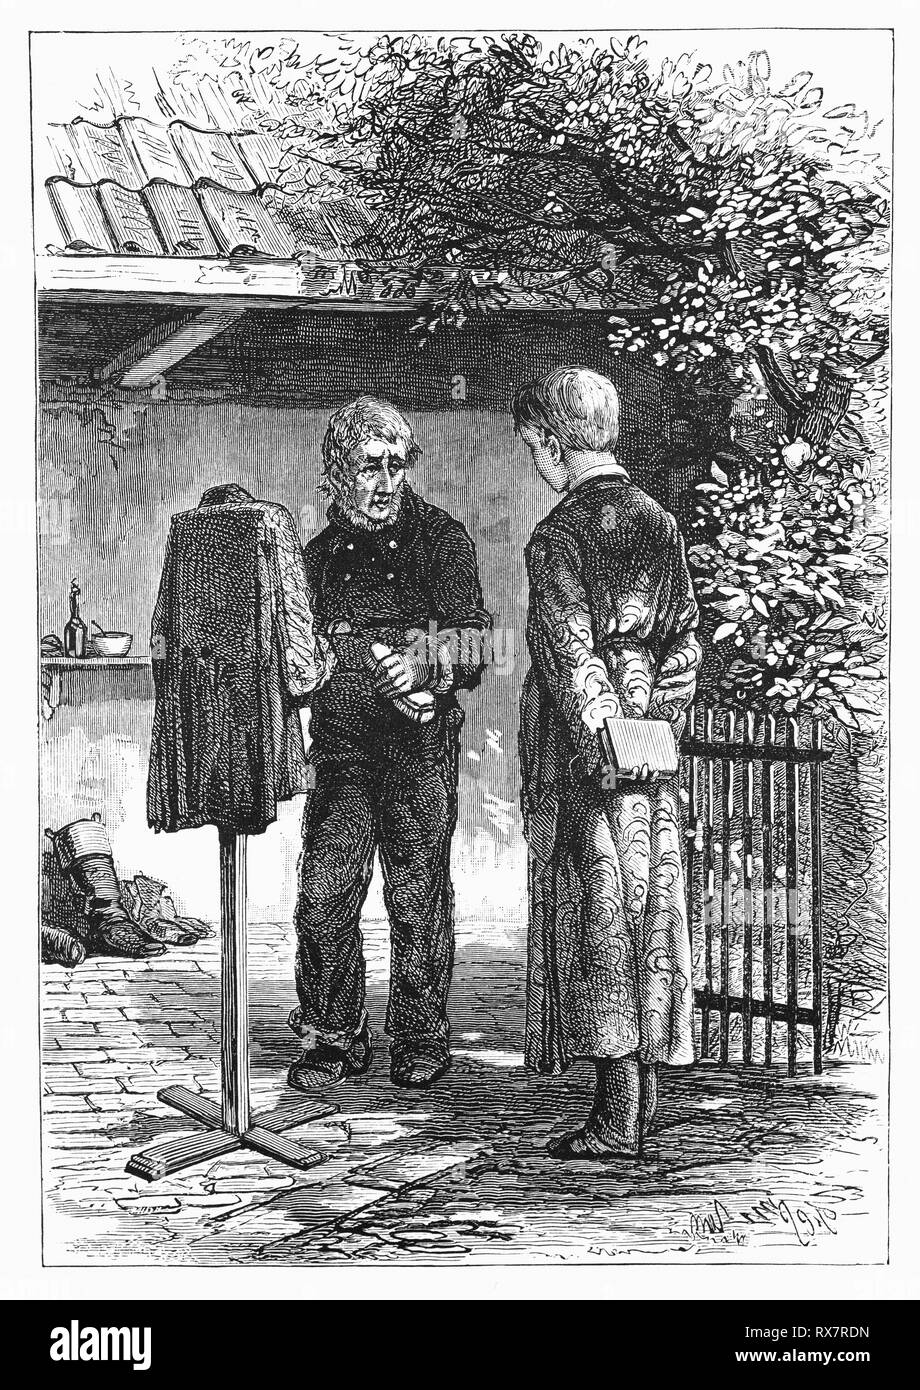 Keesje, The Deacon House Man tells his sad story to Hildebrand. From the 19th Century Camera Obscura, a collection of Dutch humorous-realistic essays, stories and sketches in which Hildebrand, the author, takes an ironic look at the behavior of the 'well-to-do', finding  them bourgeois and without a good word for them. - Stock Image